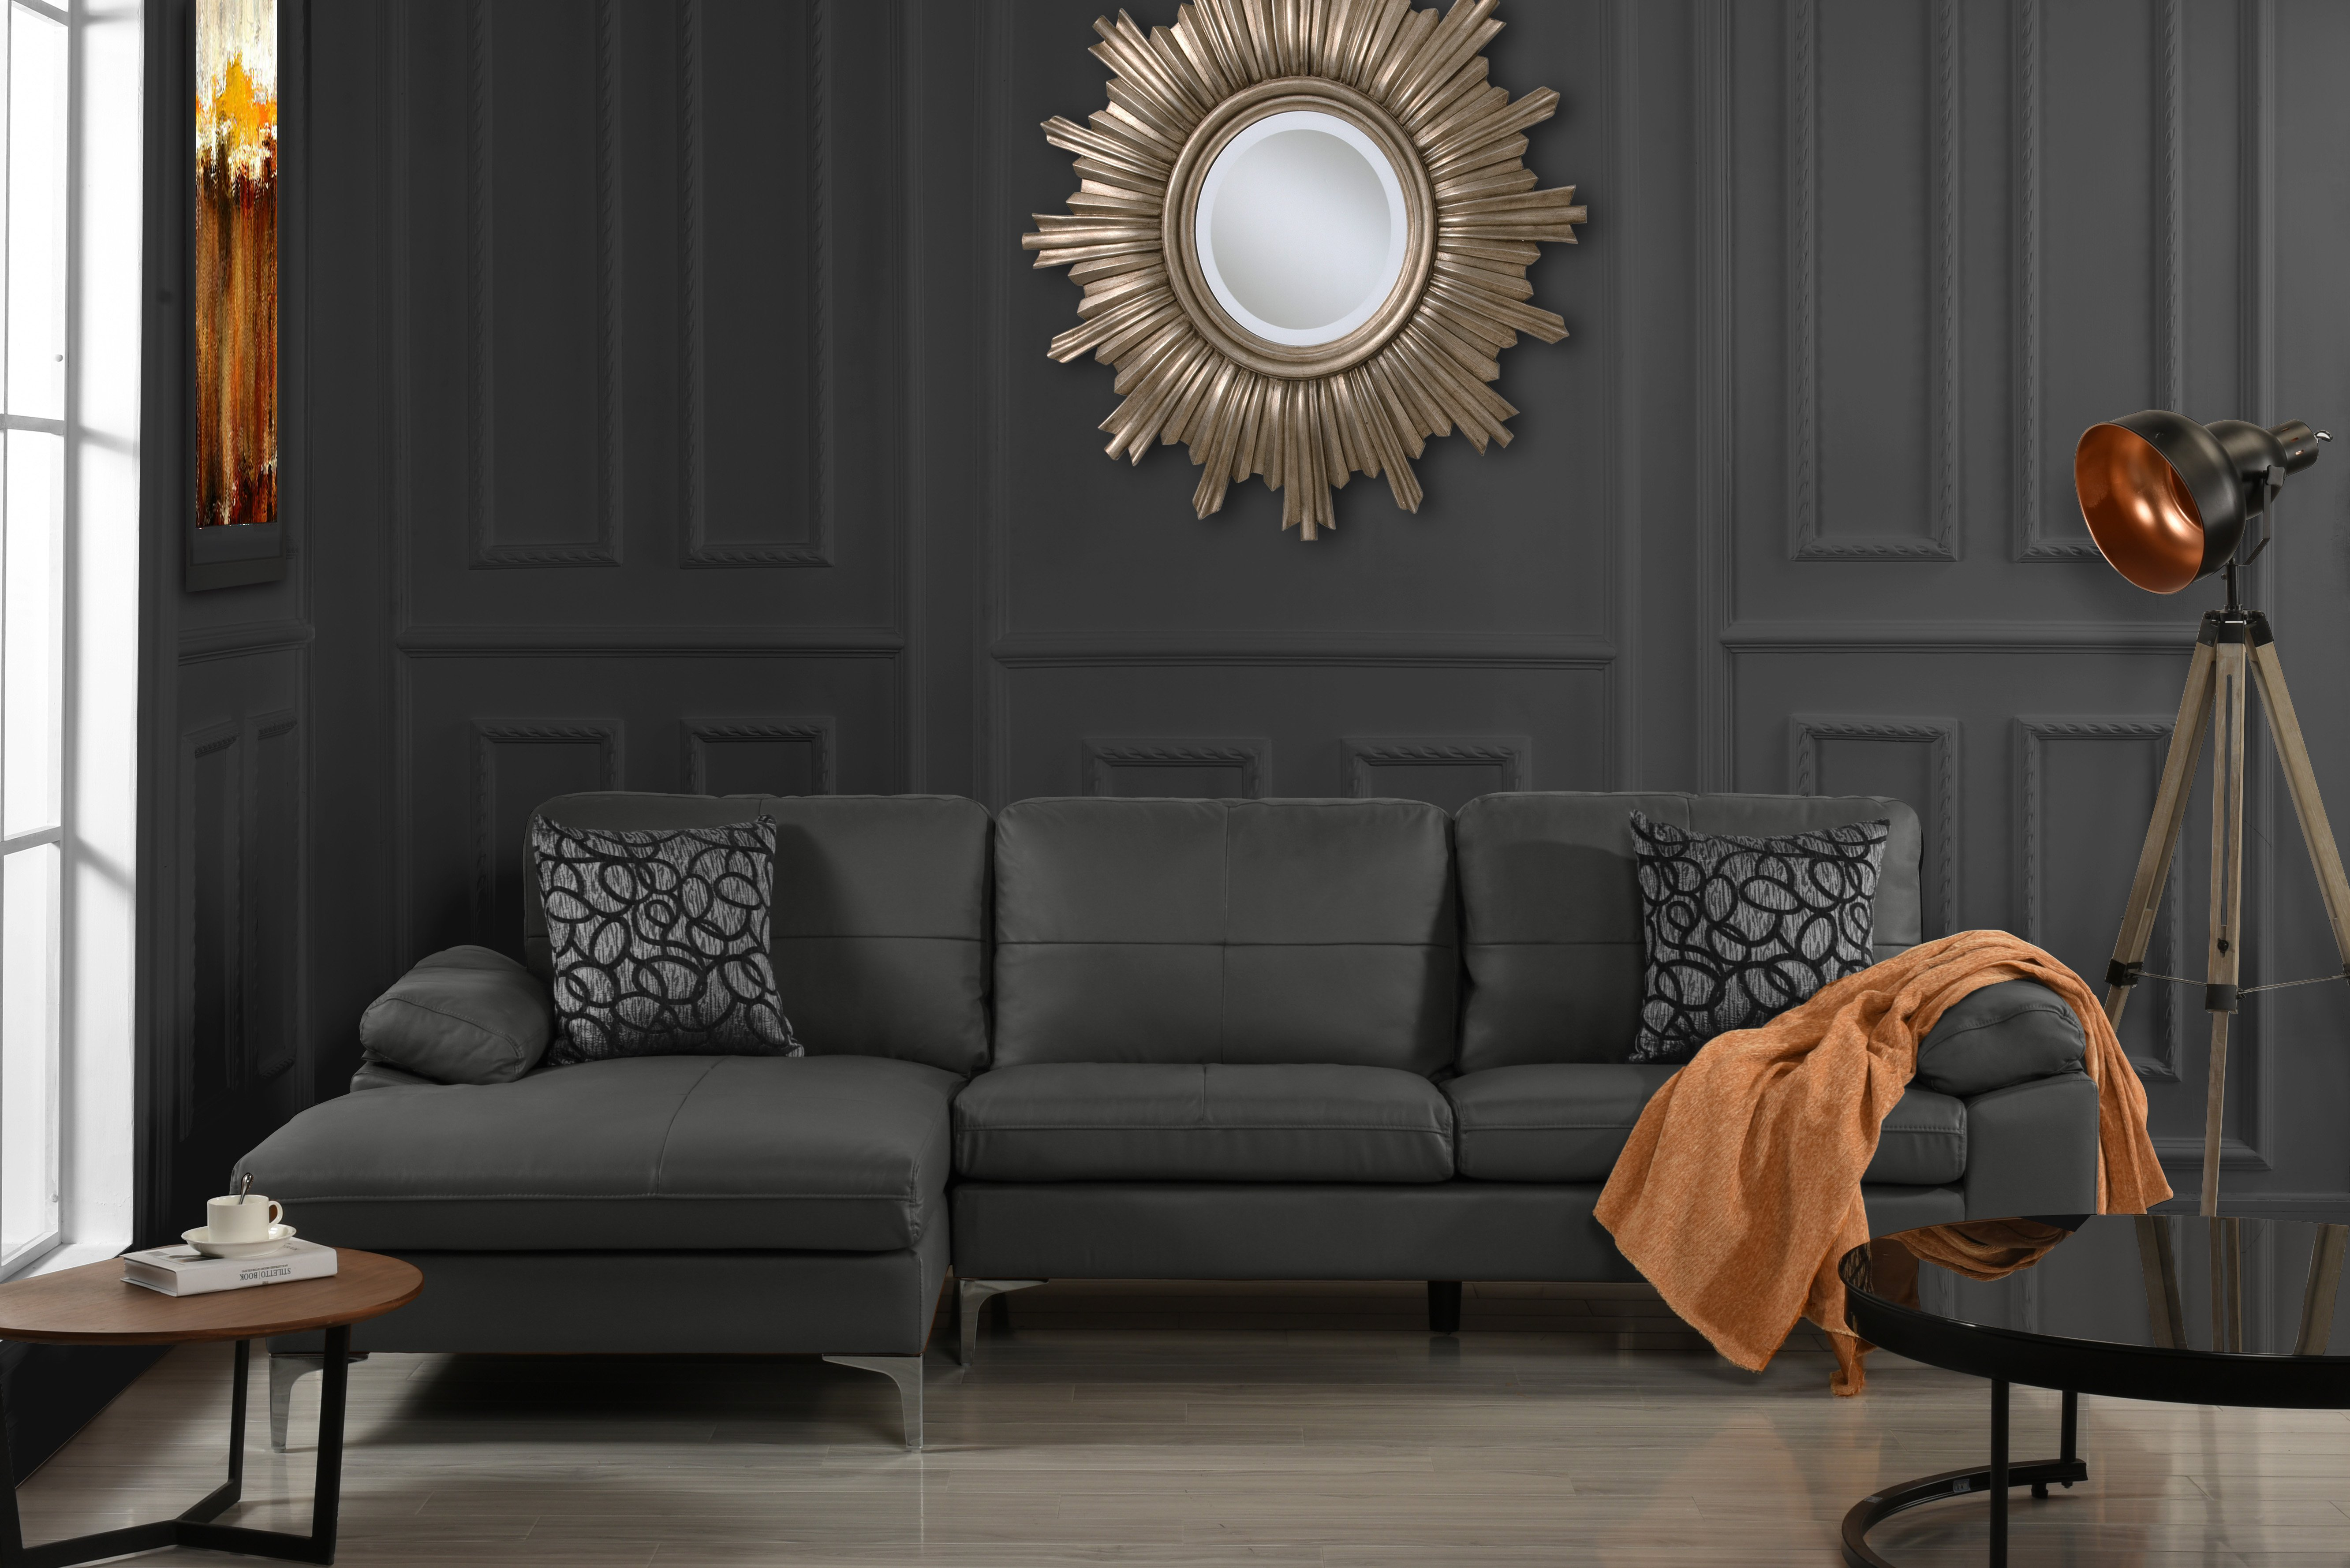 Details about Leather Sectional Sofa, L-Shape Couch with Left Facing Chaise  Lounge (Grey)